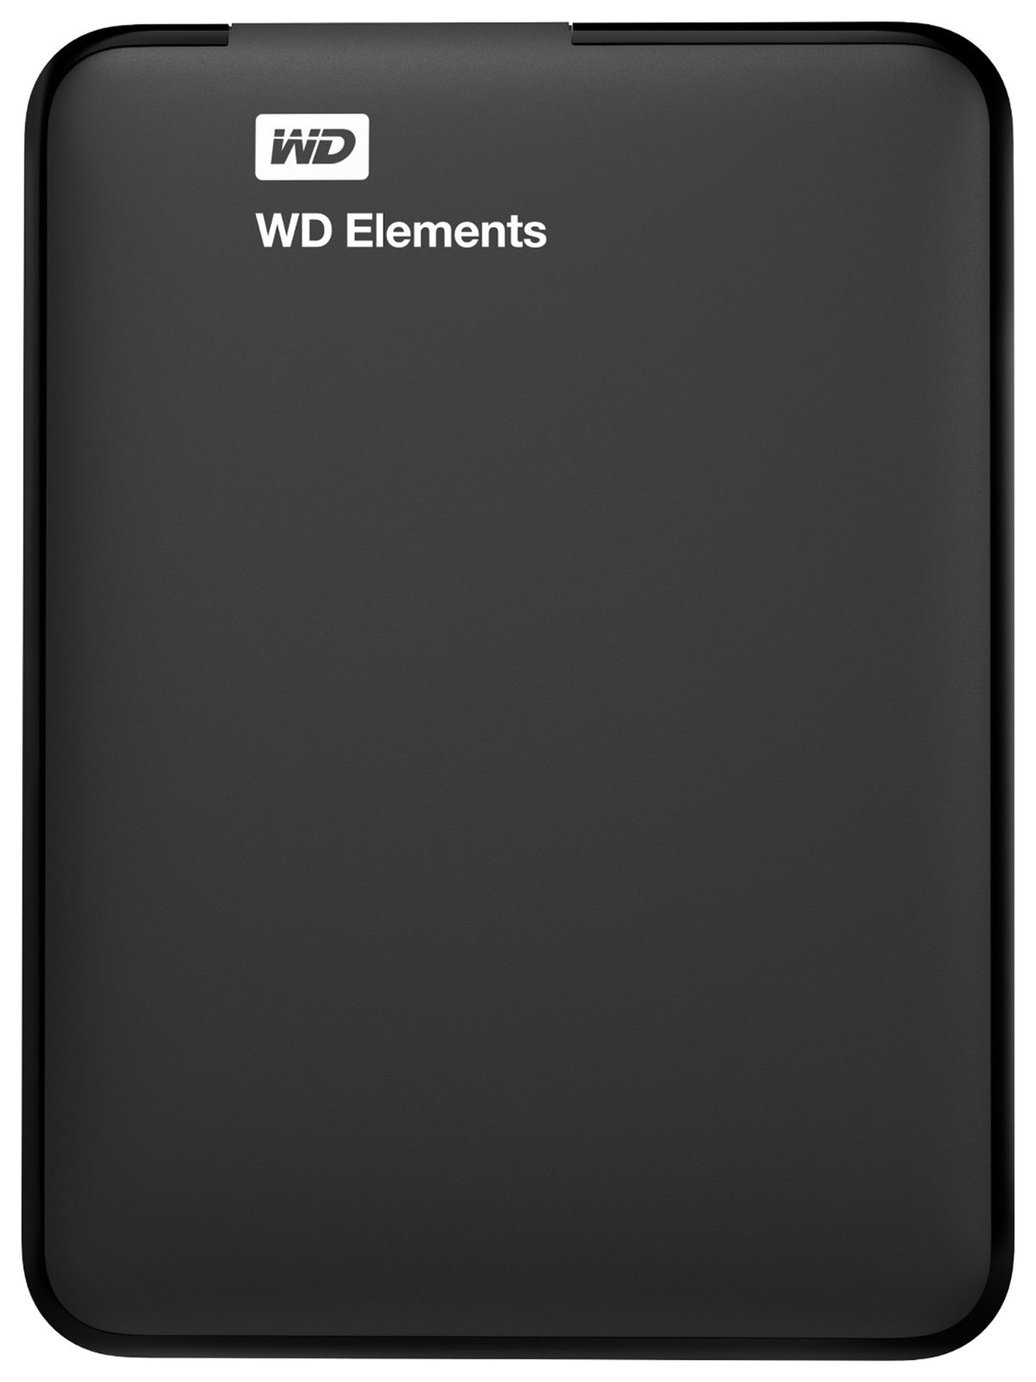 WD Elements 1TB Portable Hard Drive - Black